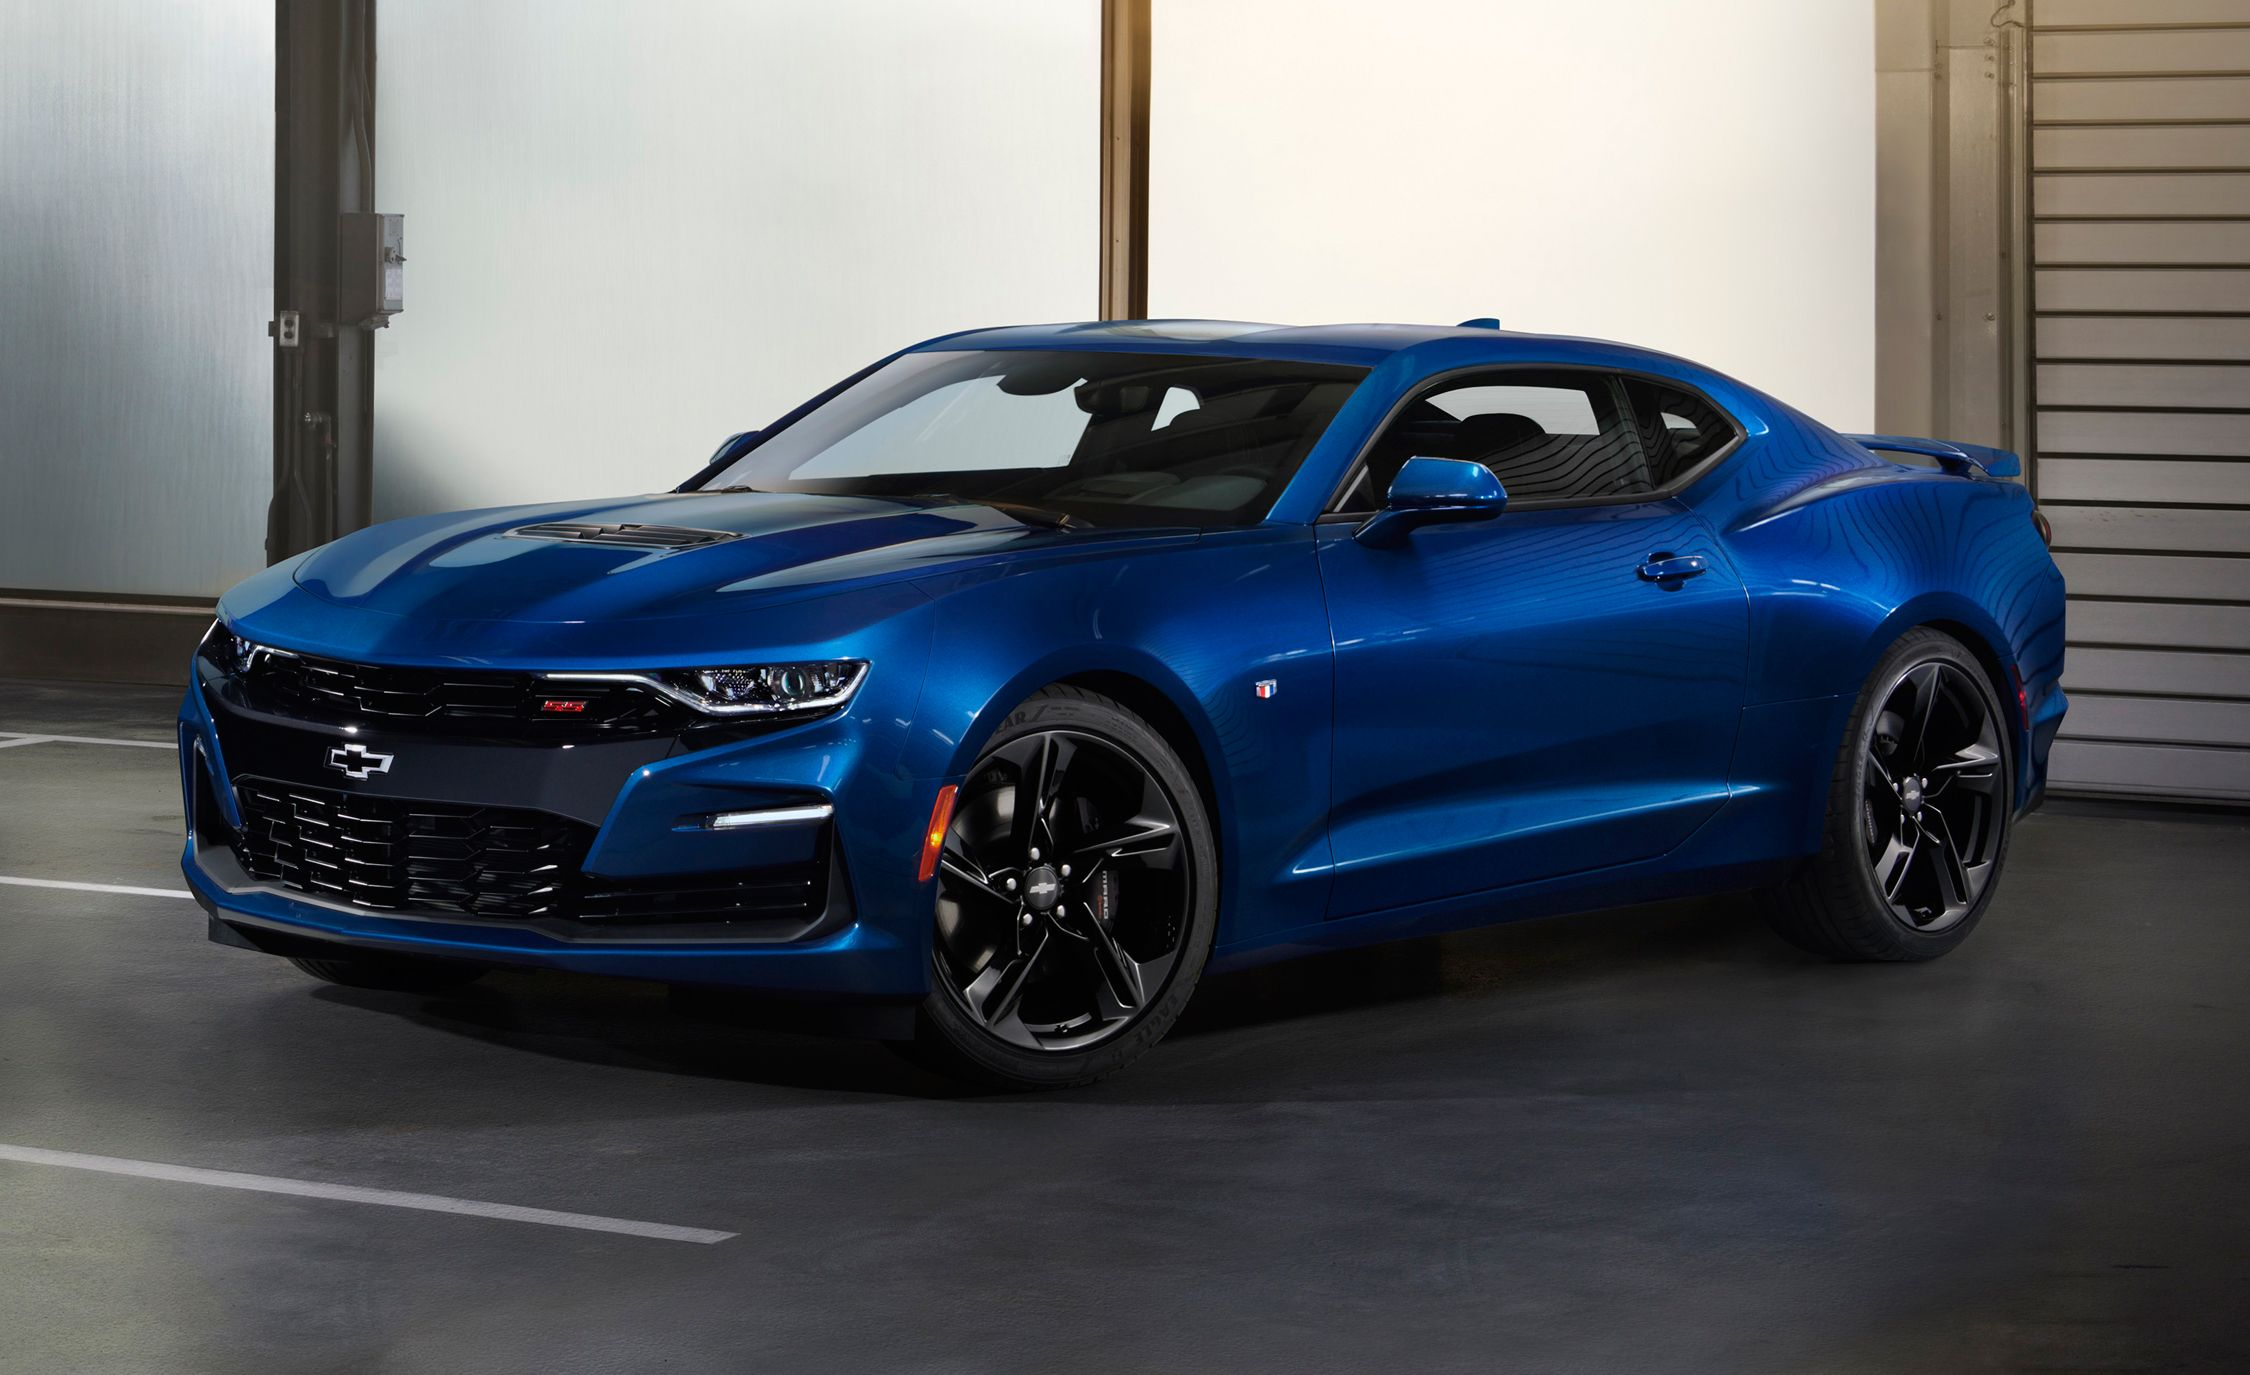 2019 Chevrolet Camaro Lineup Gets An Evolutionary Update